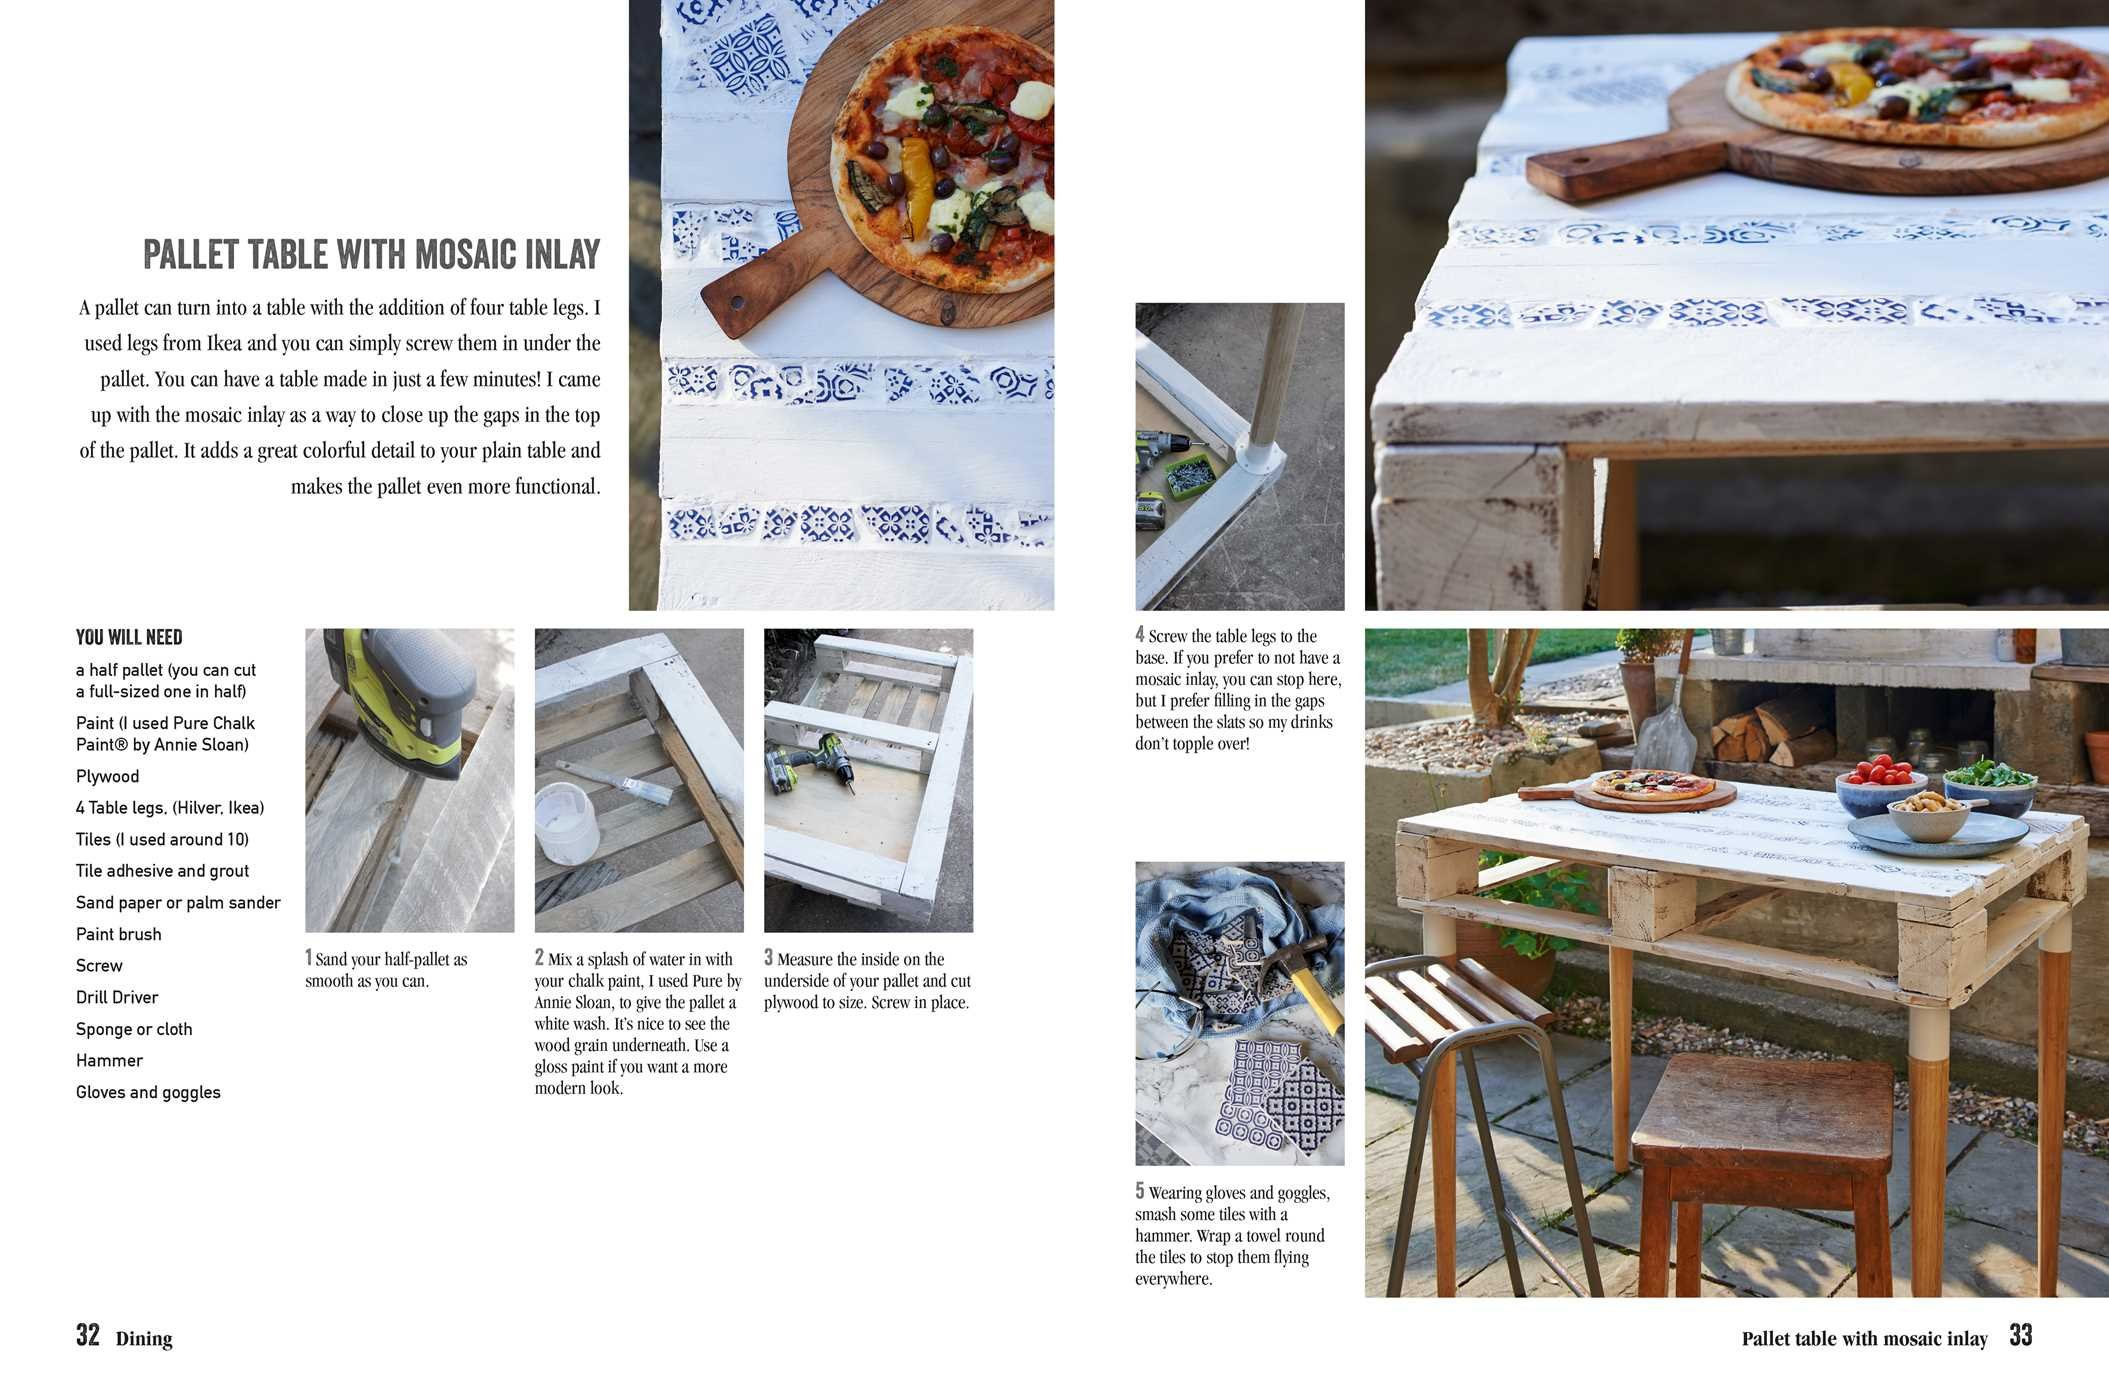 Pallet Wood Projects For Outdoor Spaces 35 Contemporary Projects For Garden Furniture Accessories Van Overbeek Hester 9781782497158 Amazon Com Books